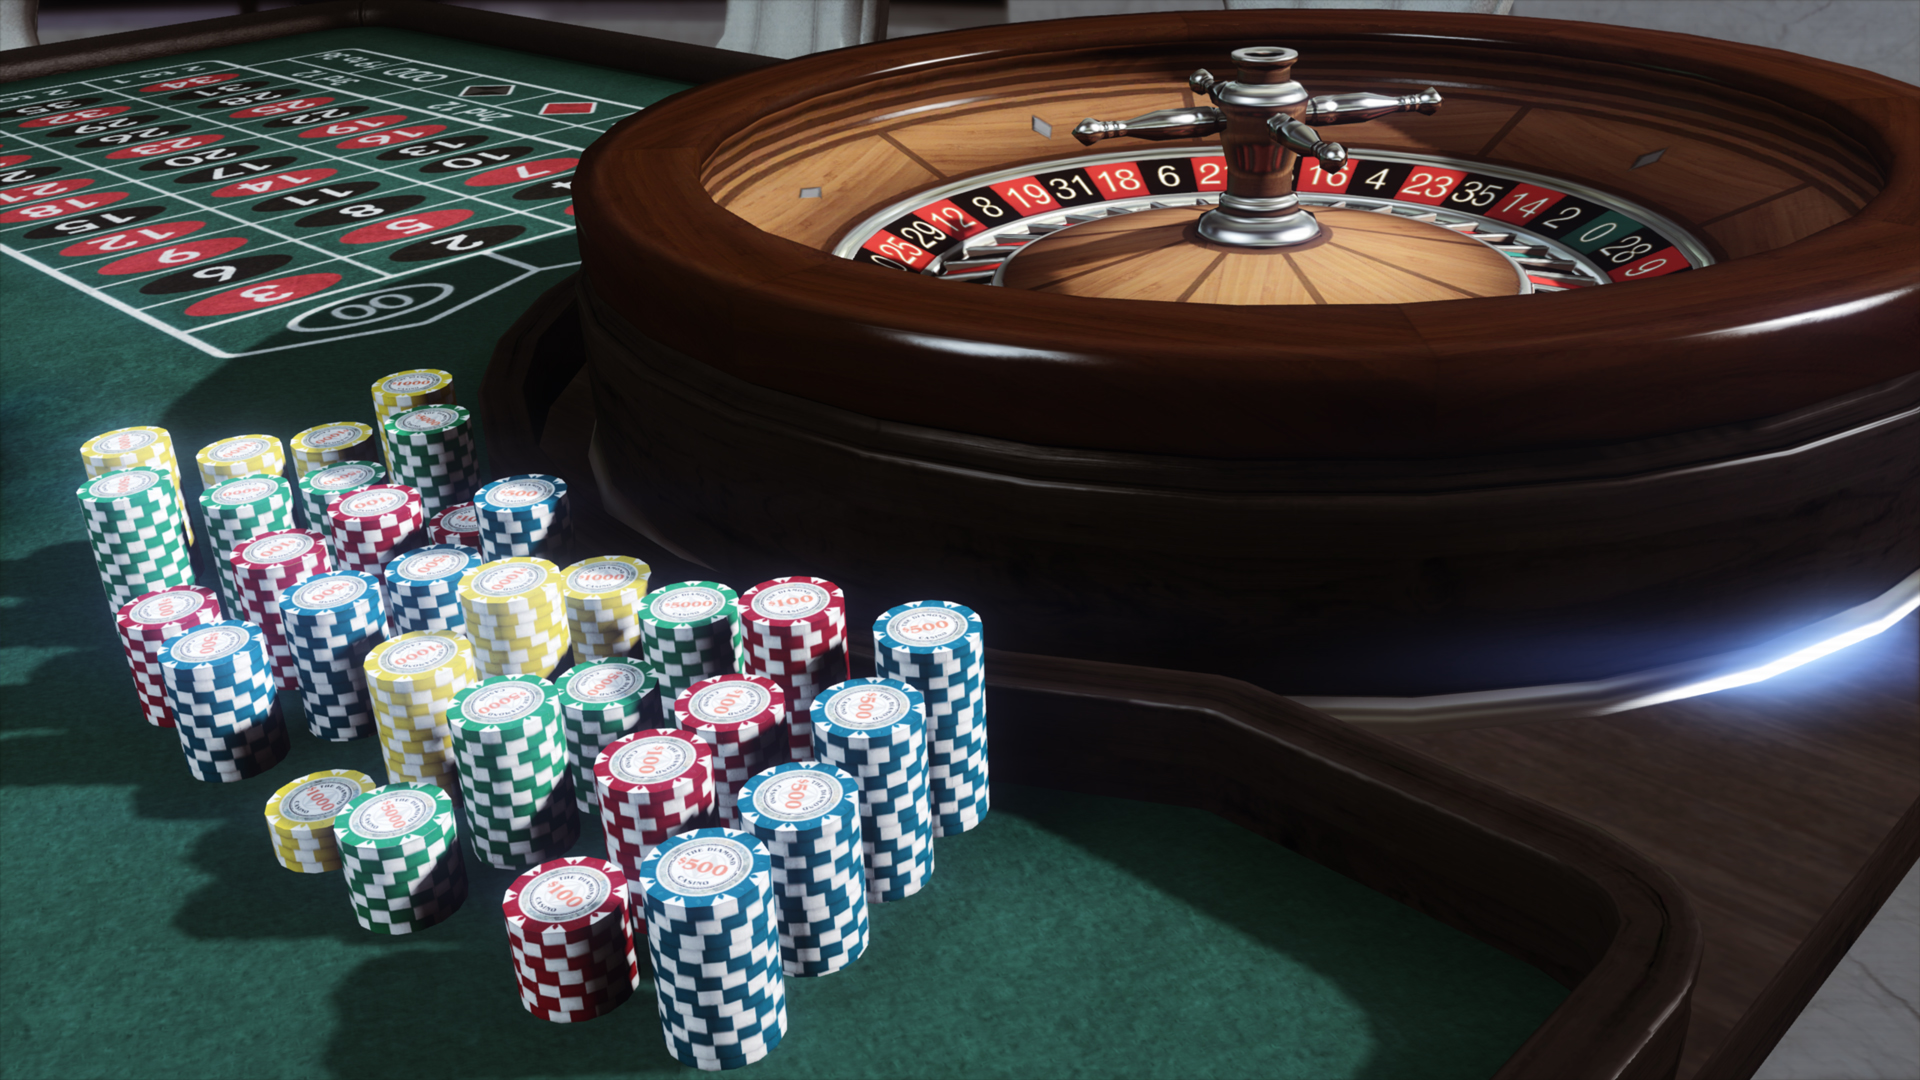 5015fae6149f15c920c01da3401f68033fb8b6f8 1 - Internet Casino Games - Which is the Best One for You?